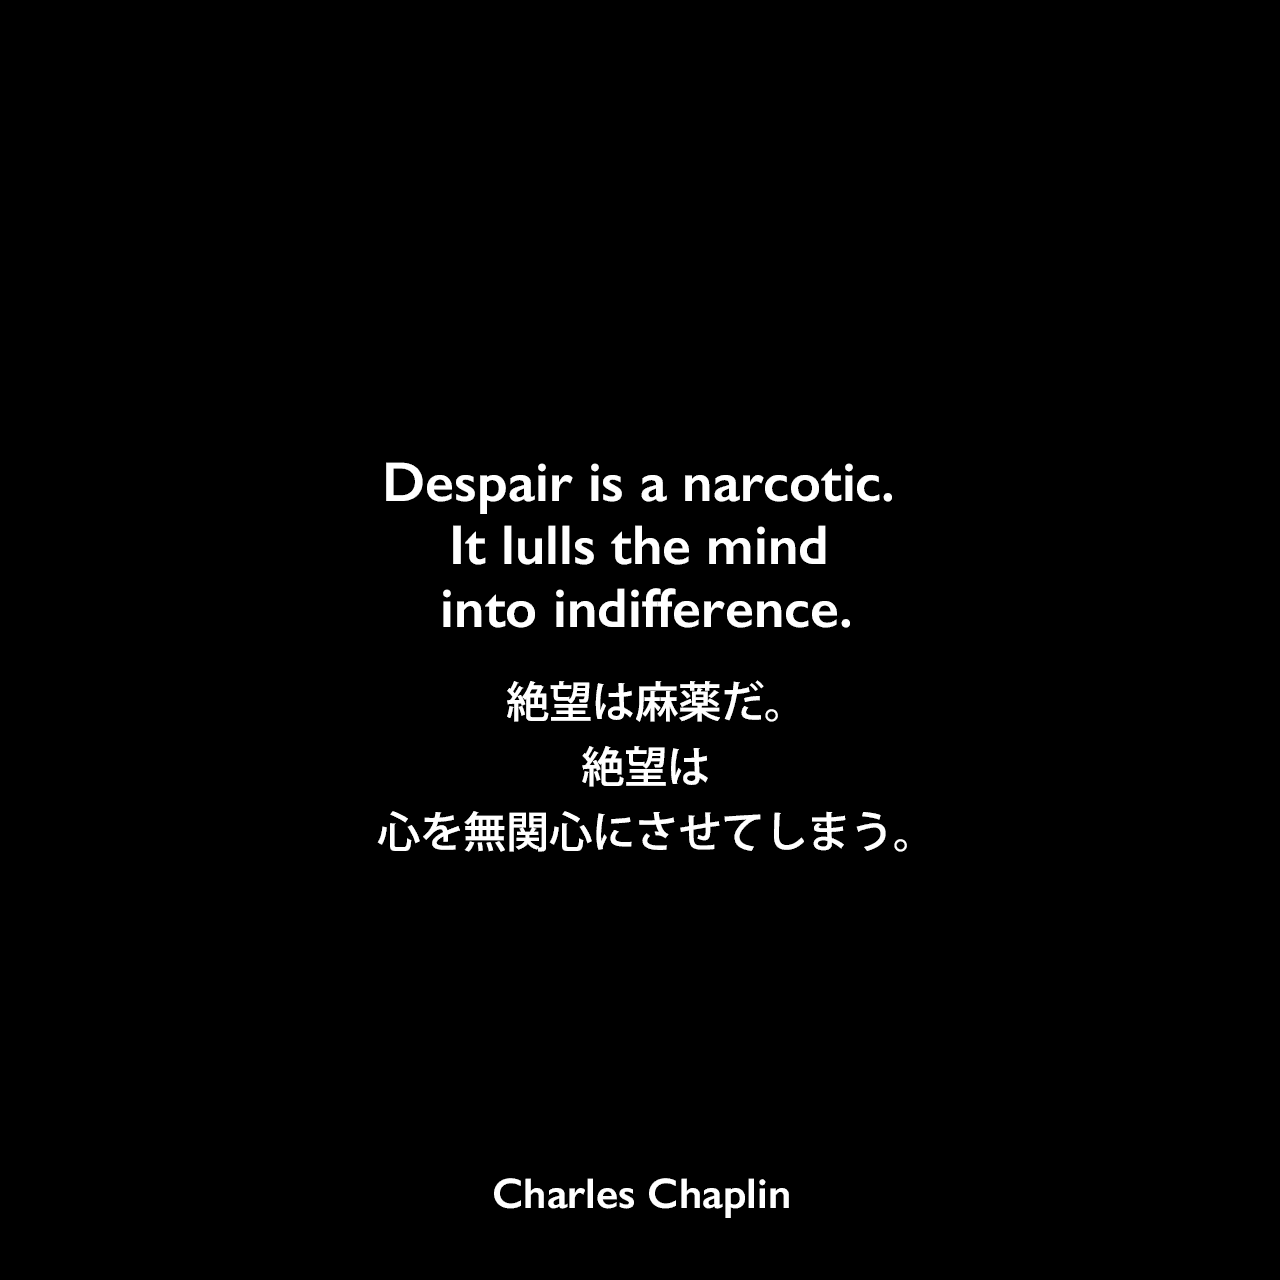 Despair is a narcotic. It lulls the mind into indifference.絶望は麻薬だ。絶望は心を無関心にさせてしまう。Charles Chaplin